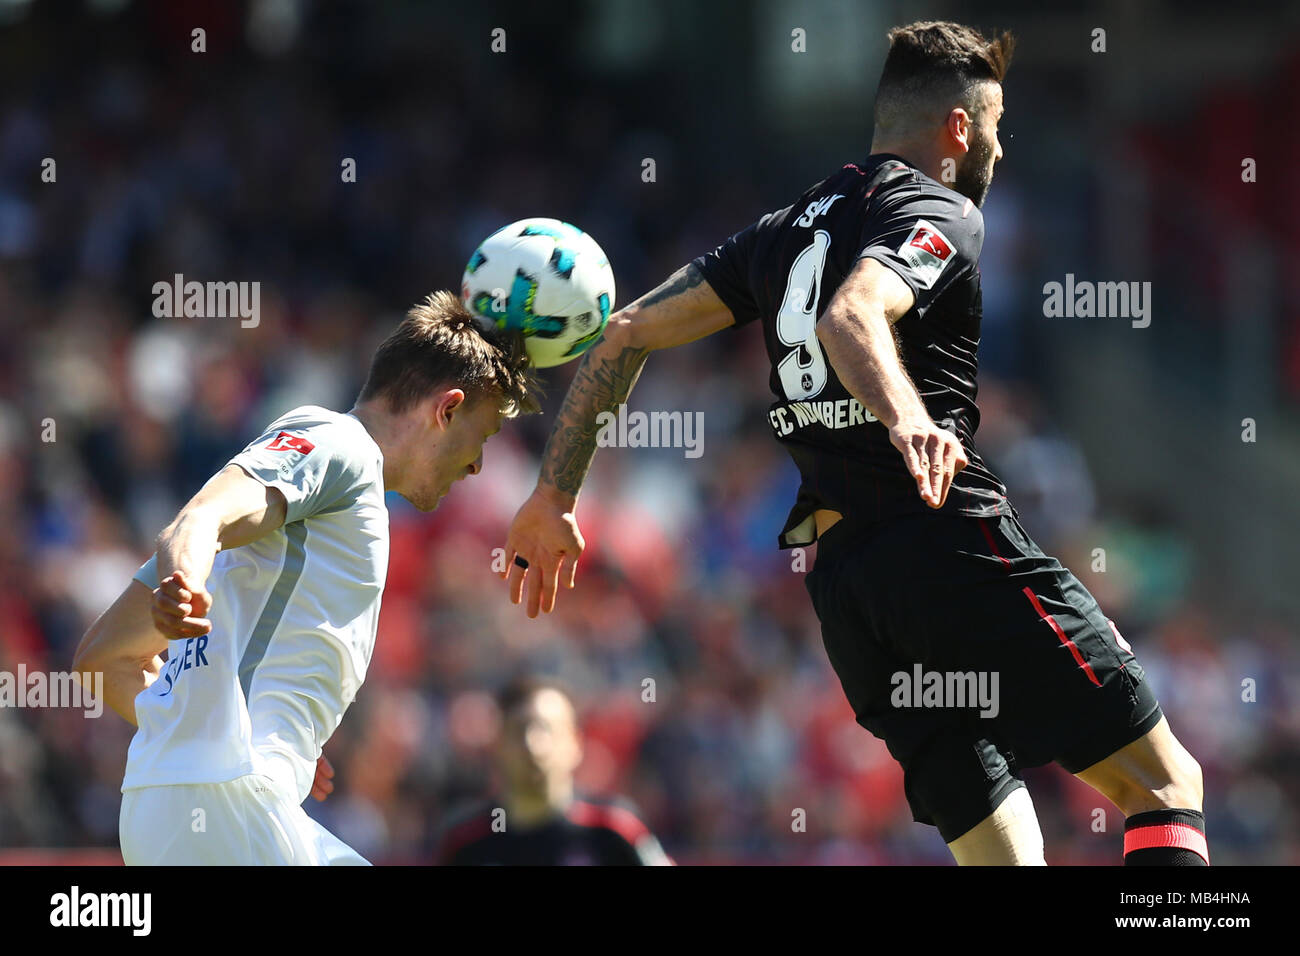 07 April 2018, Germany, Nuremberg, Soccer: 2nd Bundesliga, 1. FC Nuremberg vs 1. FC Heidenheim, in the Max Morlock Stadium. Nuremberg's Mikael Ishak (R) and Heidenheim's Oliver Steurer vying for the ball. Photo: Daniel Karmann/dpa - IMPORTANT NOTICE: Due to the German Football League·s (DFL) accreditation regulations, publication and redistribution online and in online media is limited during the match to fifteen images per match - Stock Image